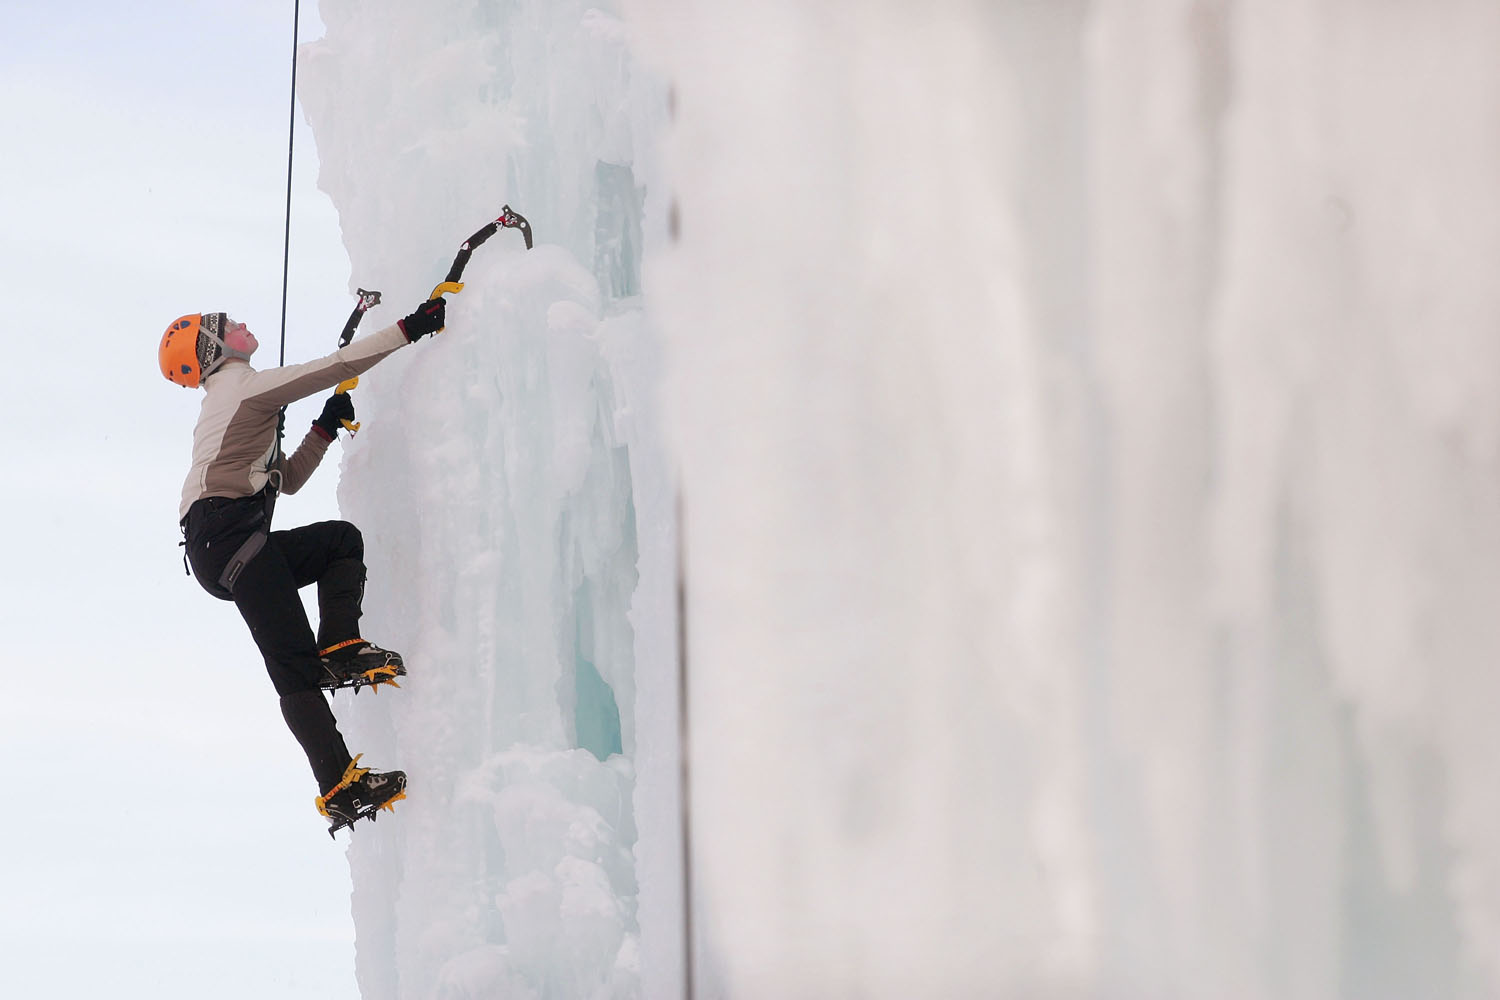 Katherine Sullivan climbs the side of an ice-covered grain silo in Cedar Falls, Iowa.